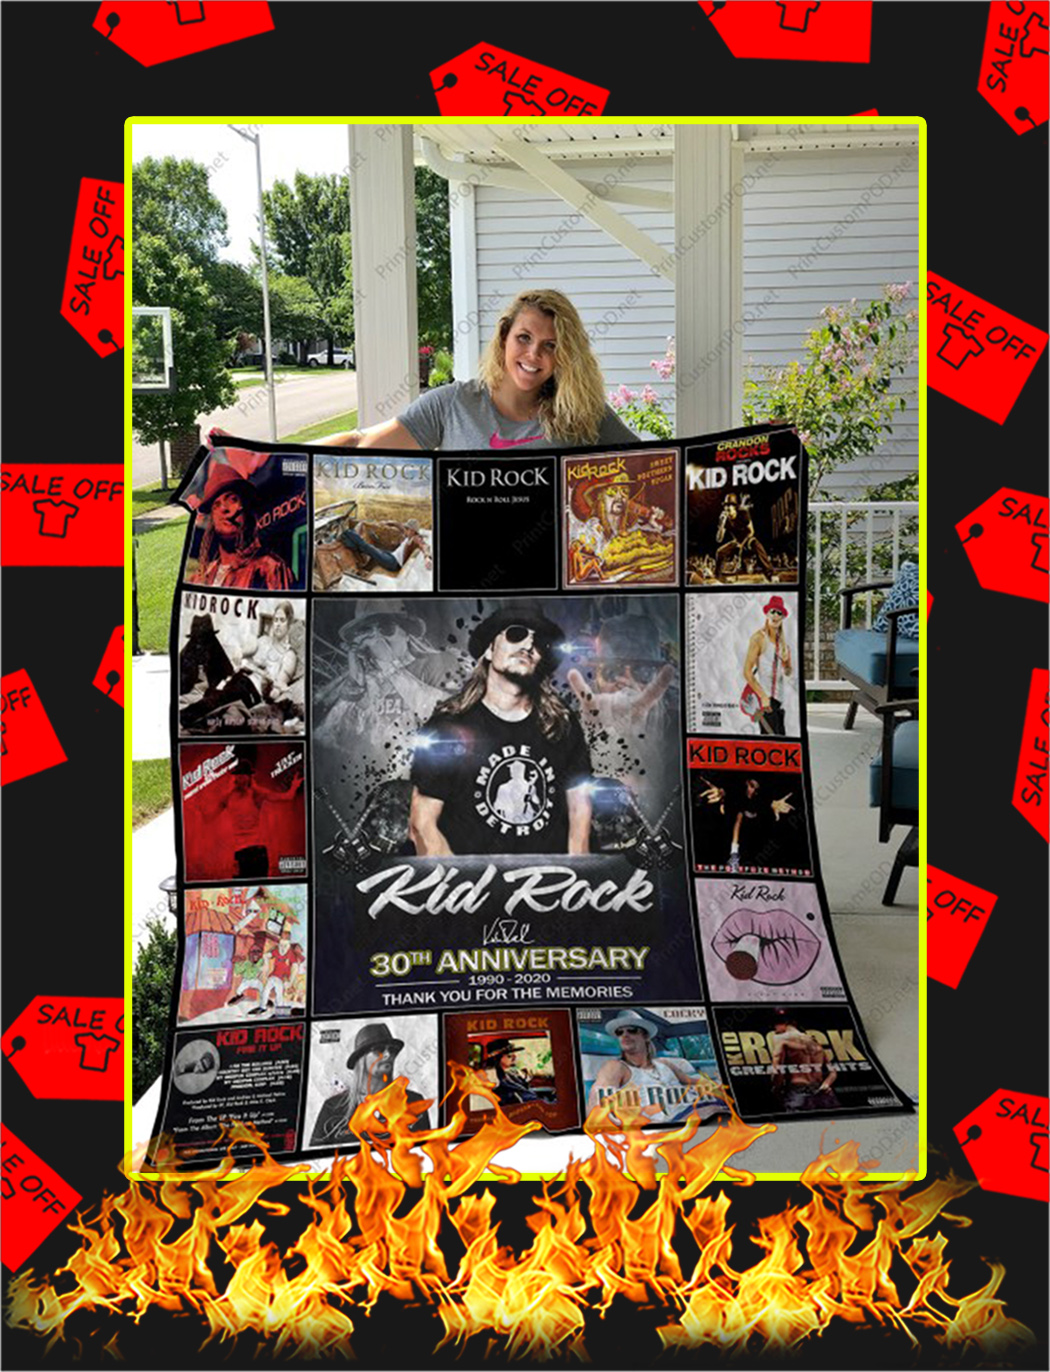 Kid Rock 30th Anniversary Thank You For The Memories Quilt Blanket - king